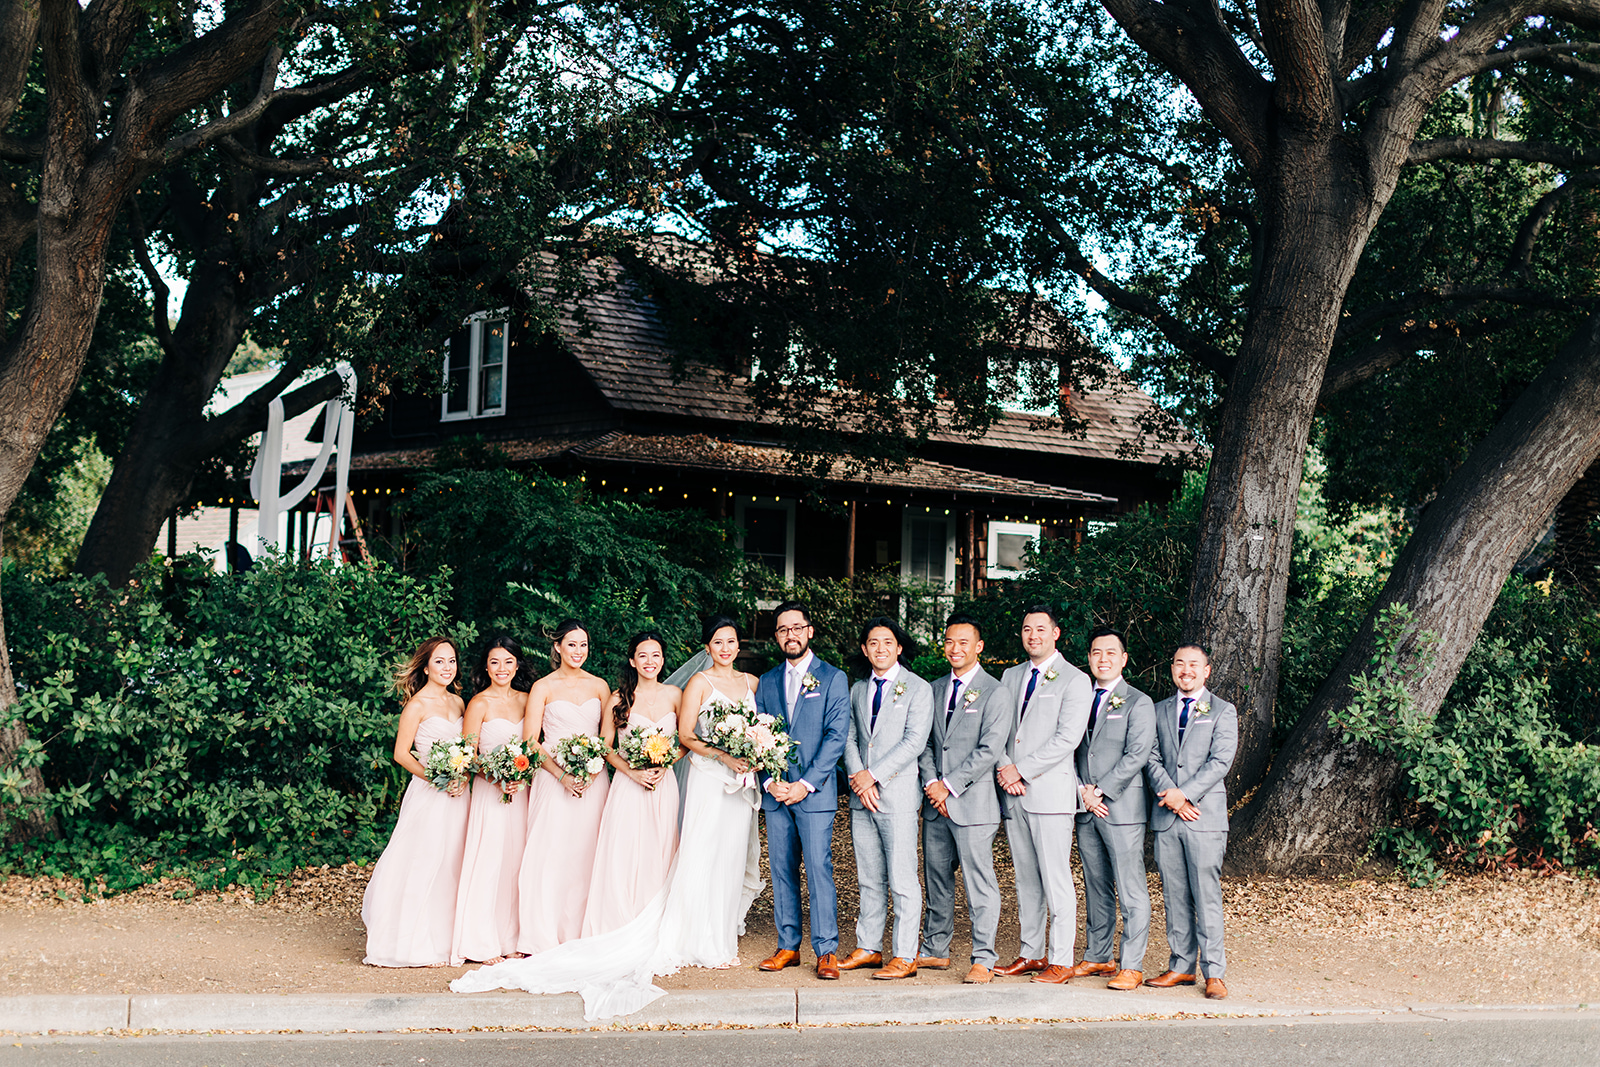 Los-Altos-History-Museum-Wedding_Orange-County-Wedding-Photographer_Clarisse-Rae-Photo-Video_38